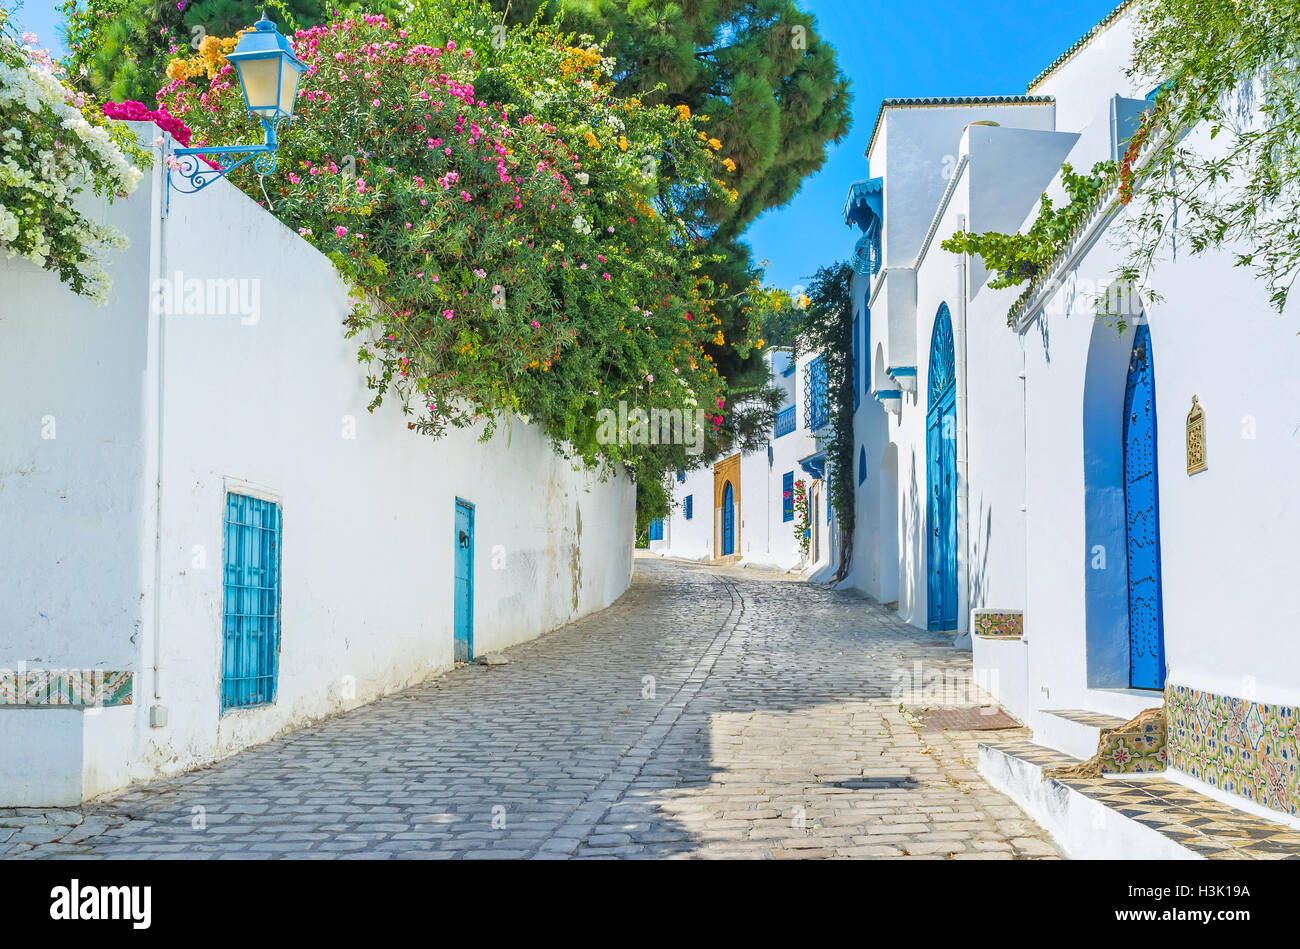 The village of Sidi Bou Said boasts the lush greenery in private gardens behind the high fences, Tunisia. - Stock Image